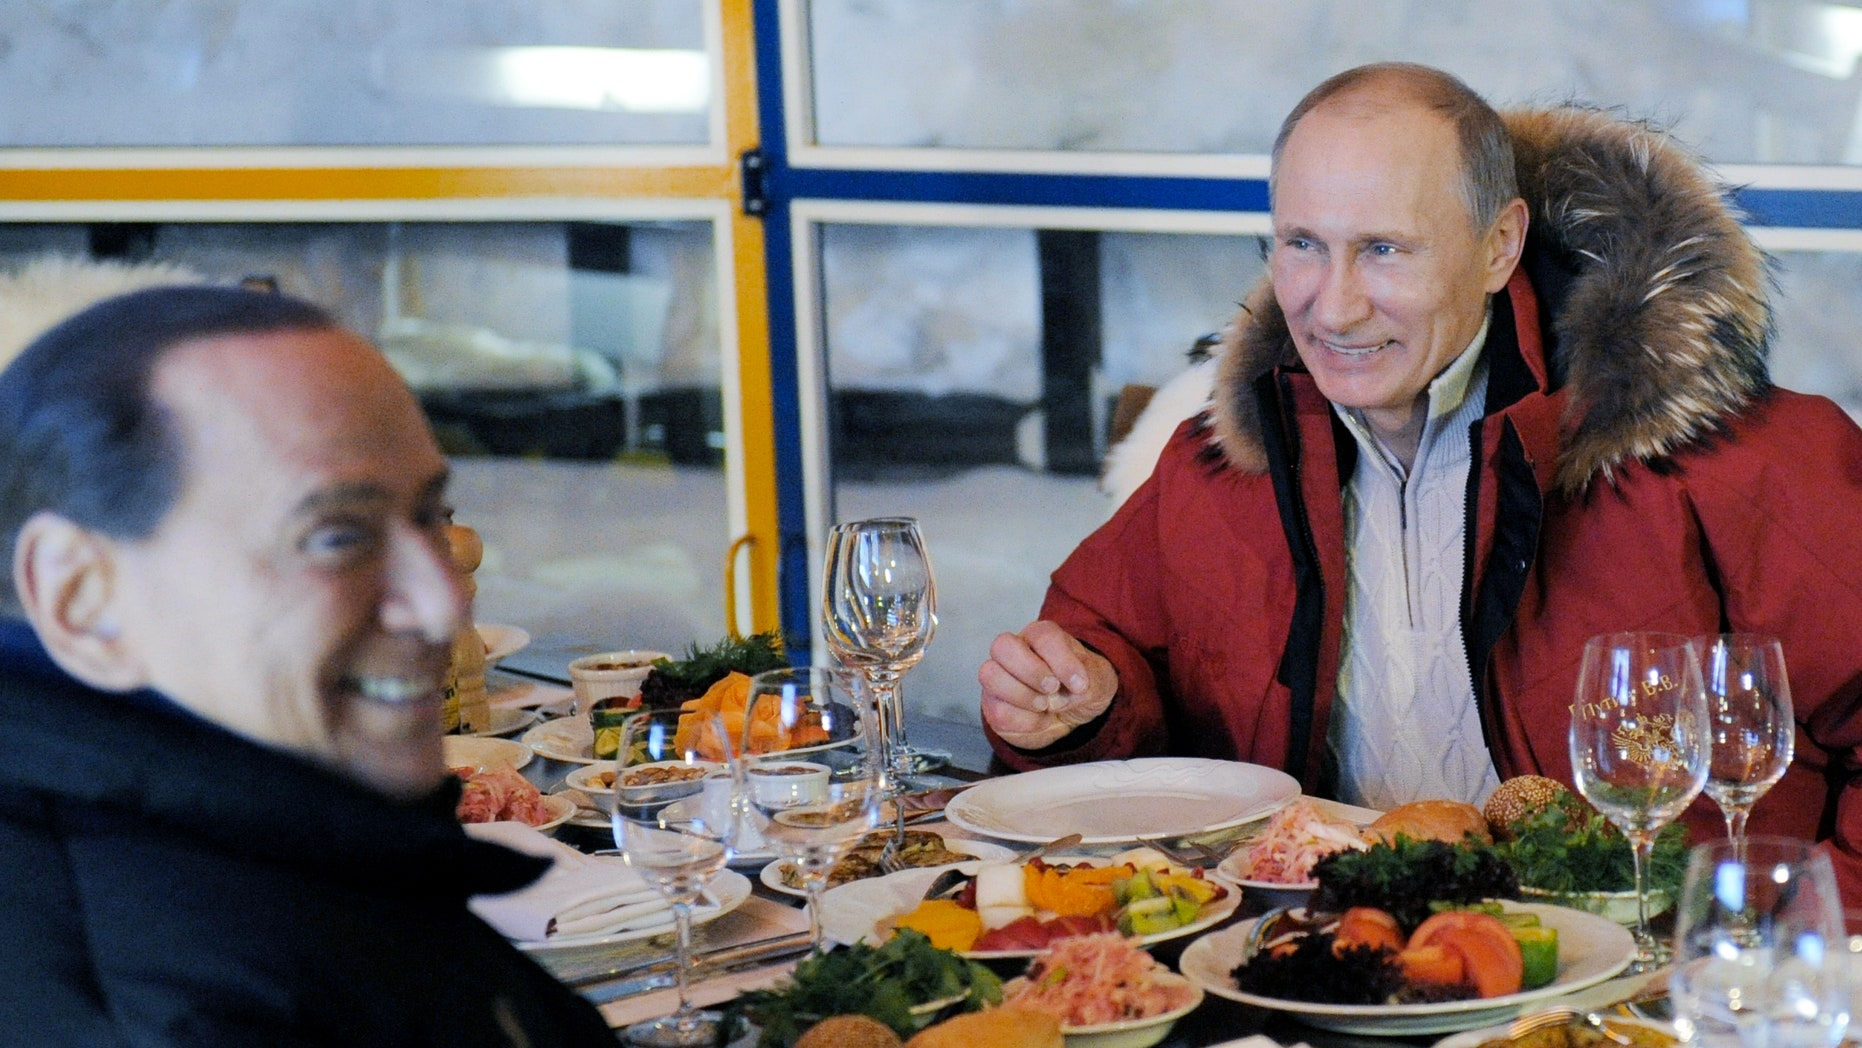 Mar. 7, 2012: Former Italian Prime Minister Silvio Berlusconi, left, and Russian Prime Minister Vladimir Putin, right, smile during their meeting in the mountain resort of Krasnaya Polyana near the Black Sea resort of Sochi, southern Russia.